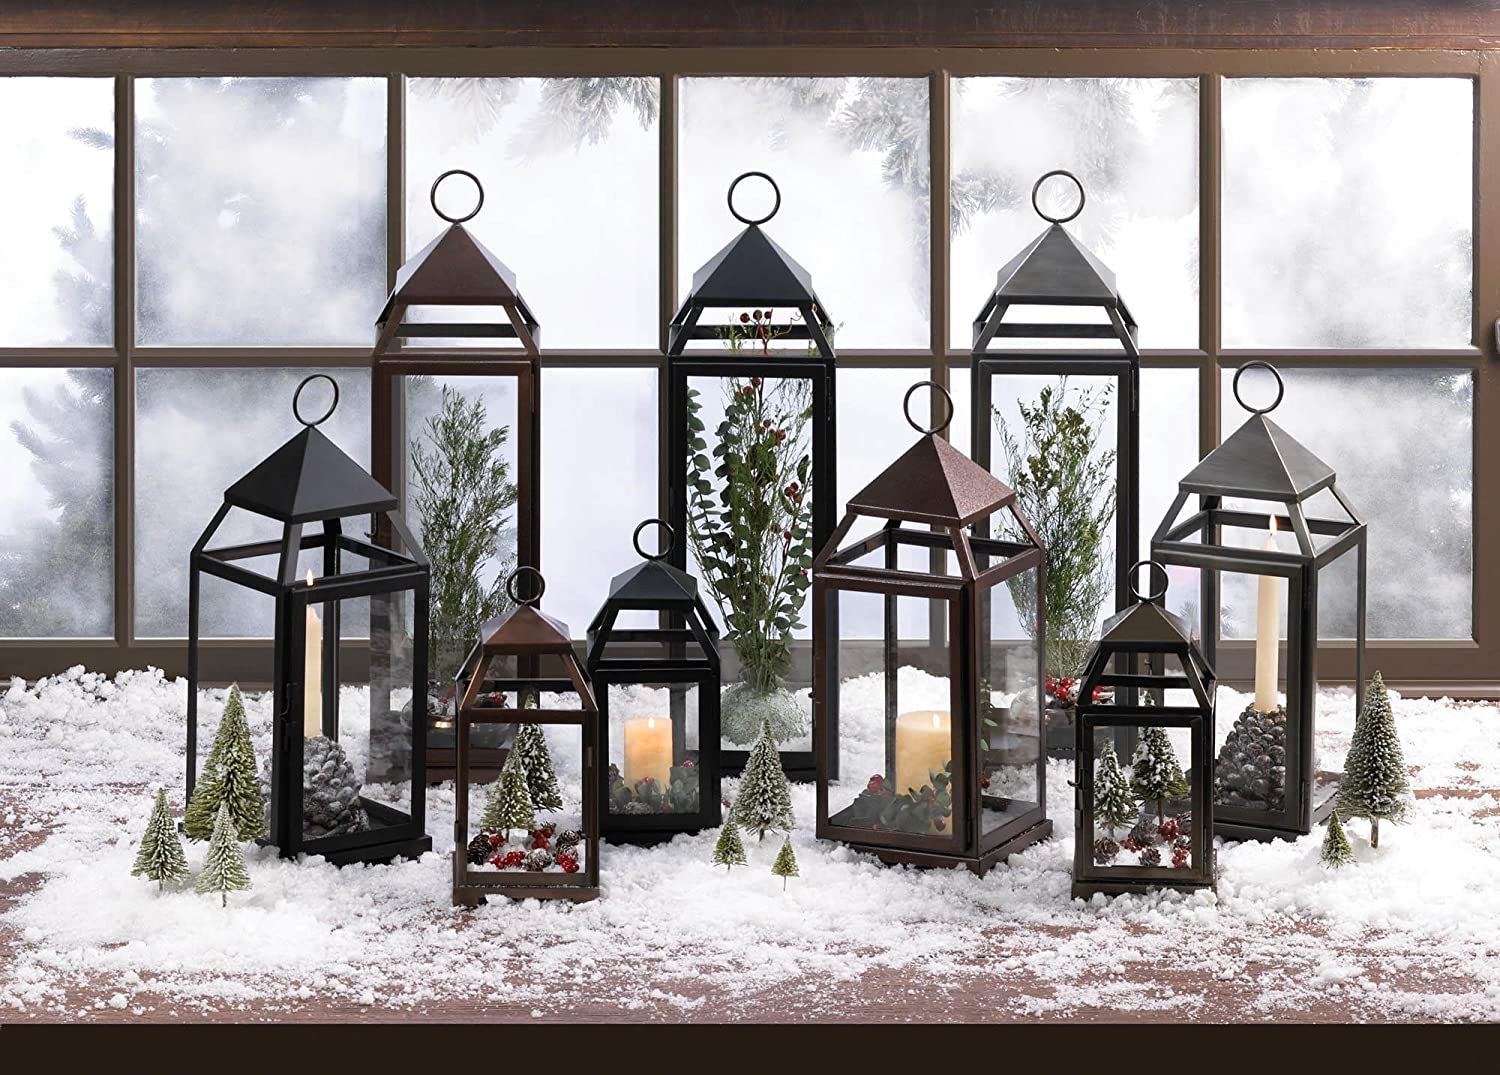 Gallery Of Light Outdoor Hanging Lanterns Large Contemporary Metal Floor Patio Outdoor Lantern Ho In 2020 Contemporary Lanterns Outdoor Hanging Lanterns Iron Lanterns